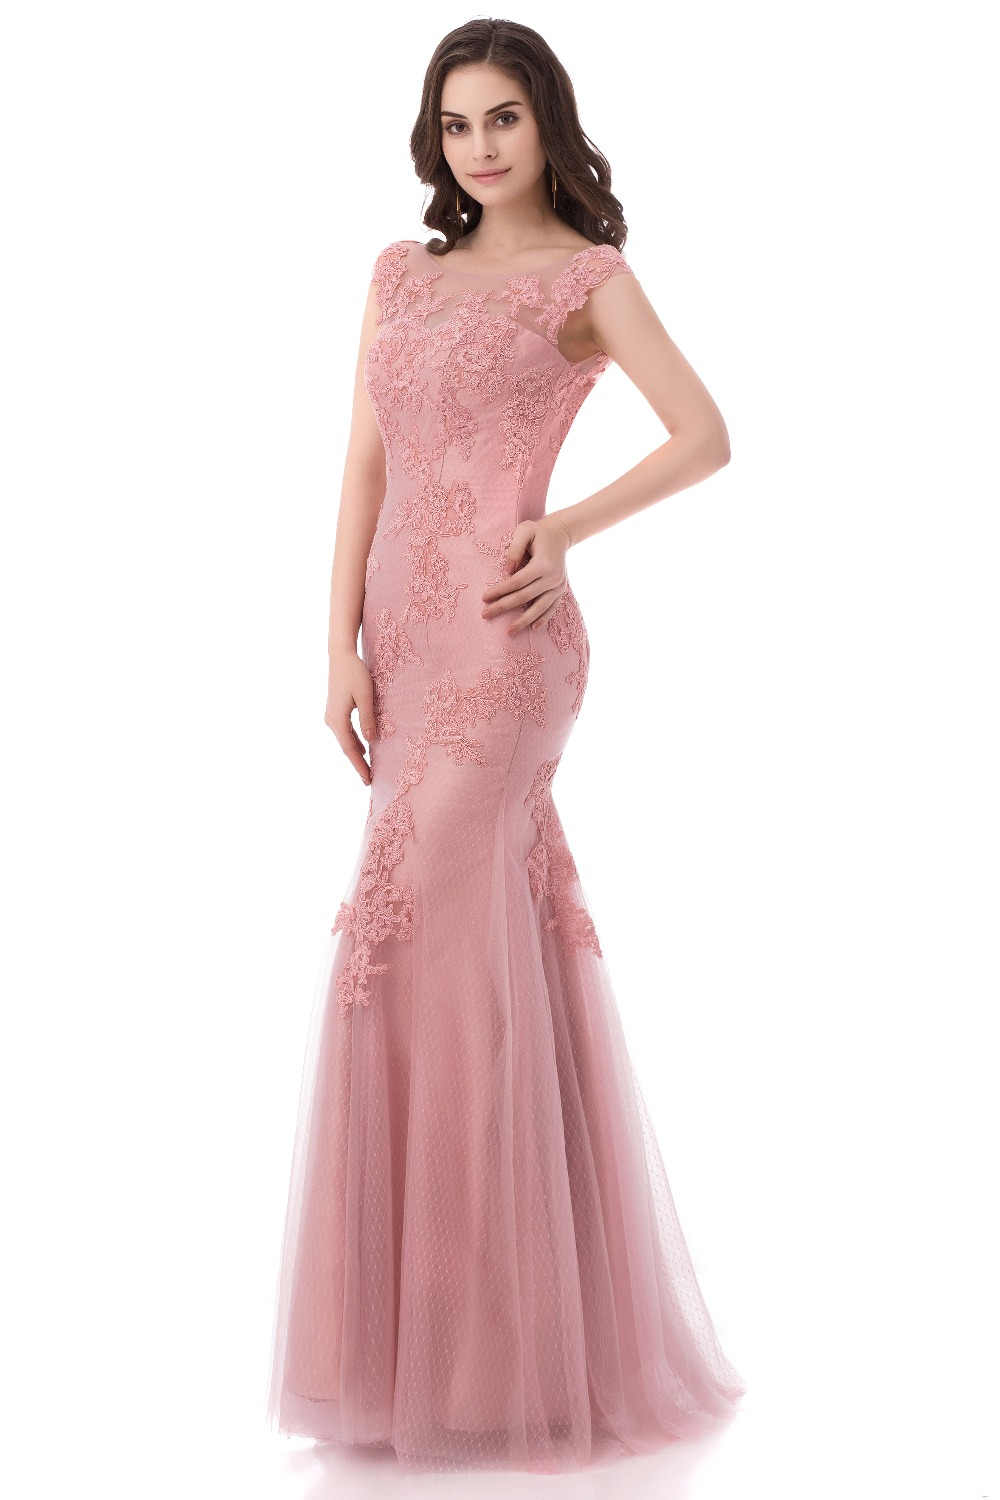 Aliexpress.com : Buy Mermaid Pink Lace Evening Dresses Long 2017 ...